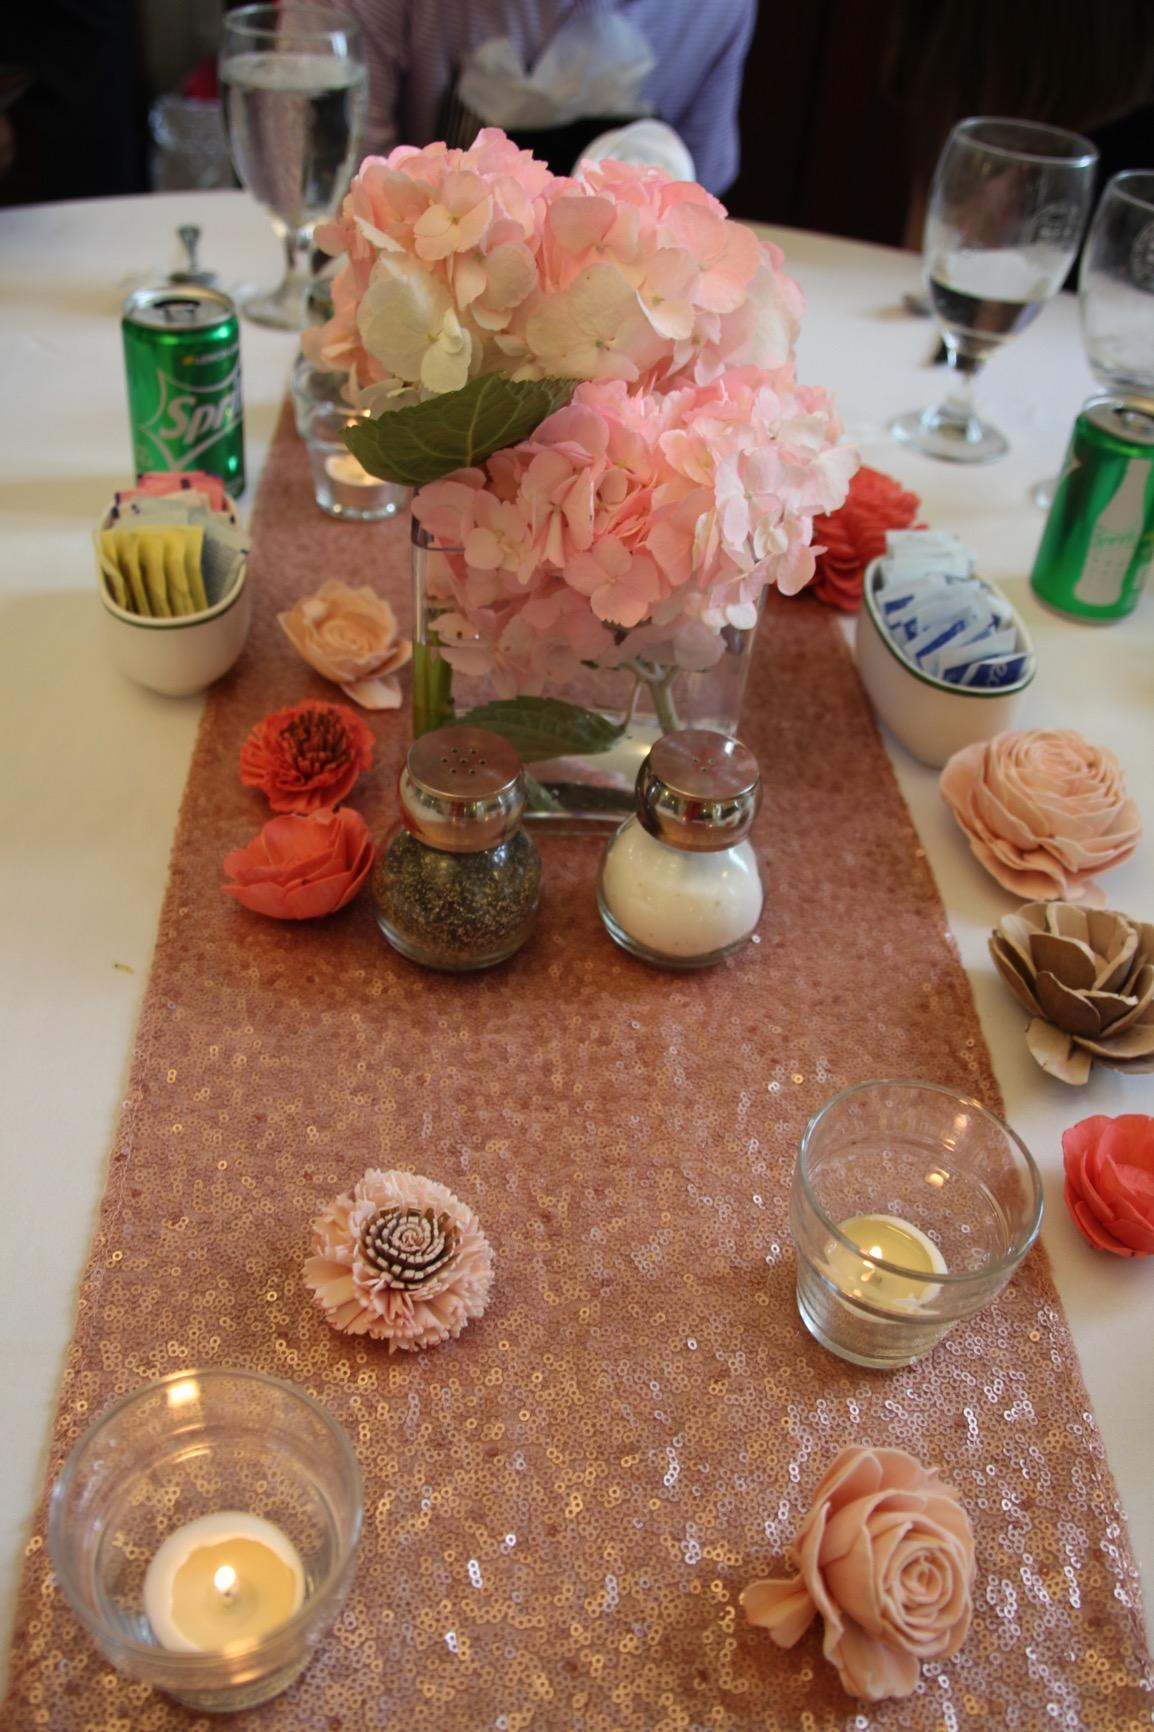 30*275cm Fabric Table Runner Gold Silver Sequin Table Cloth Sparkly Bling for Wedding Party Decoration Products Supplies AHD2750